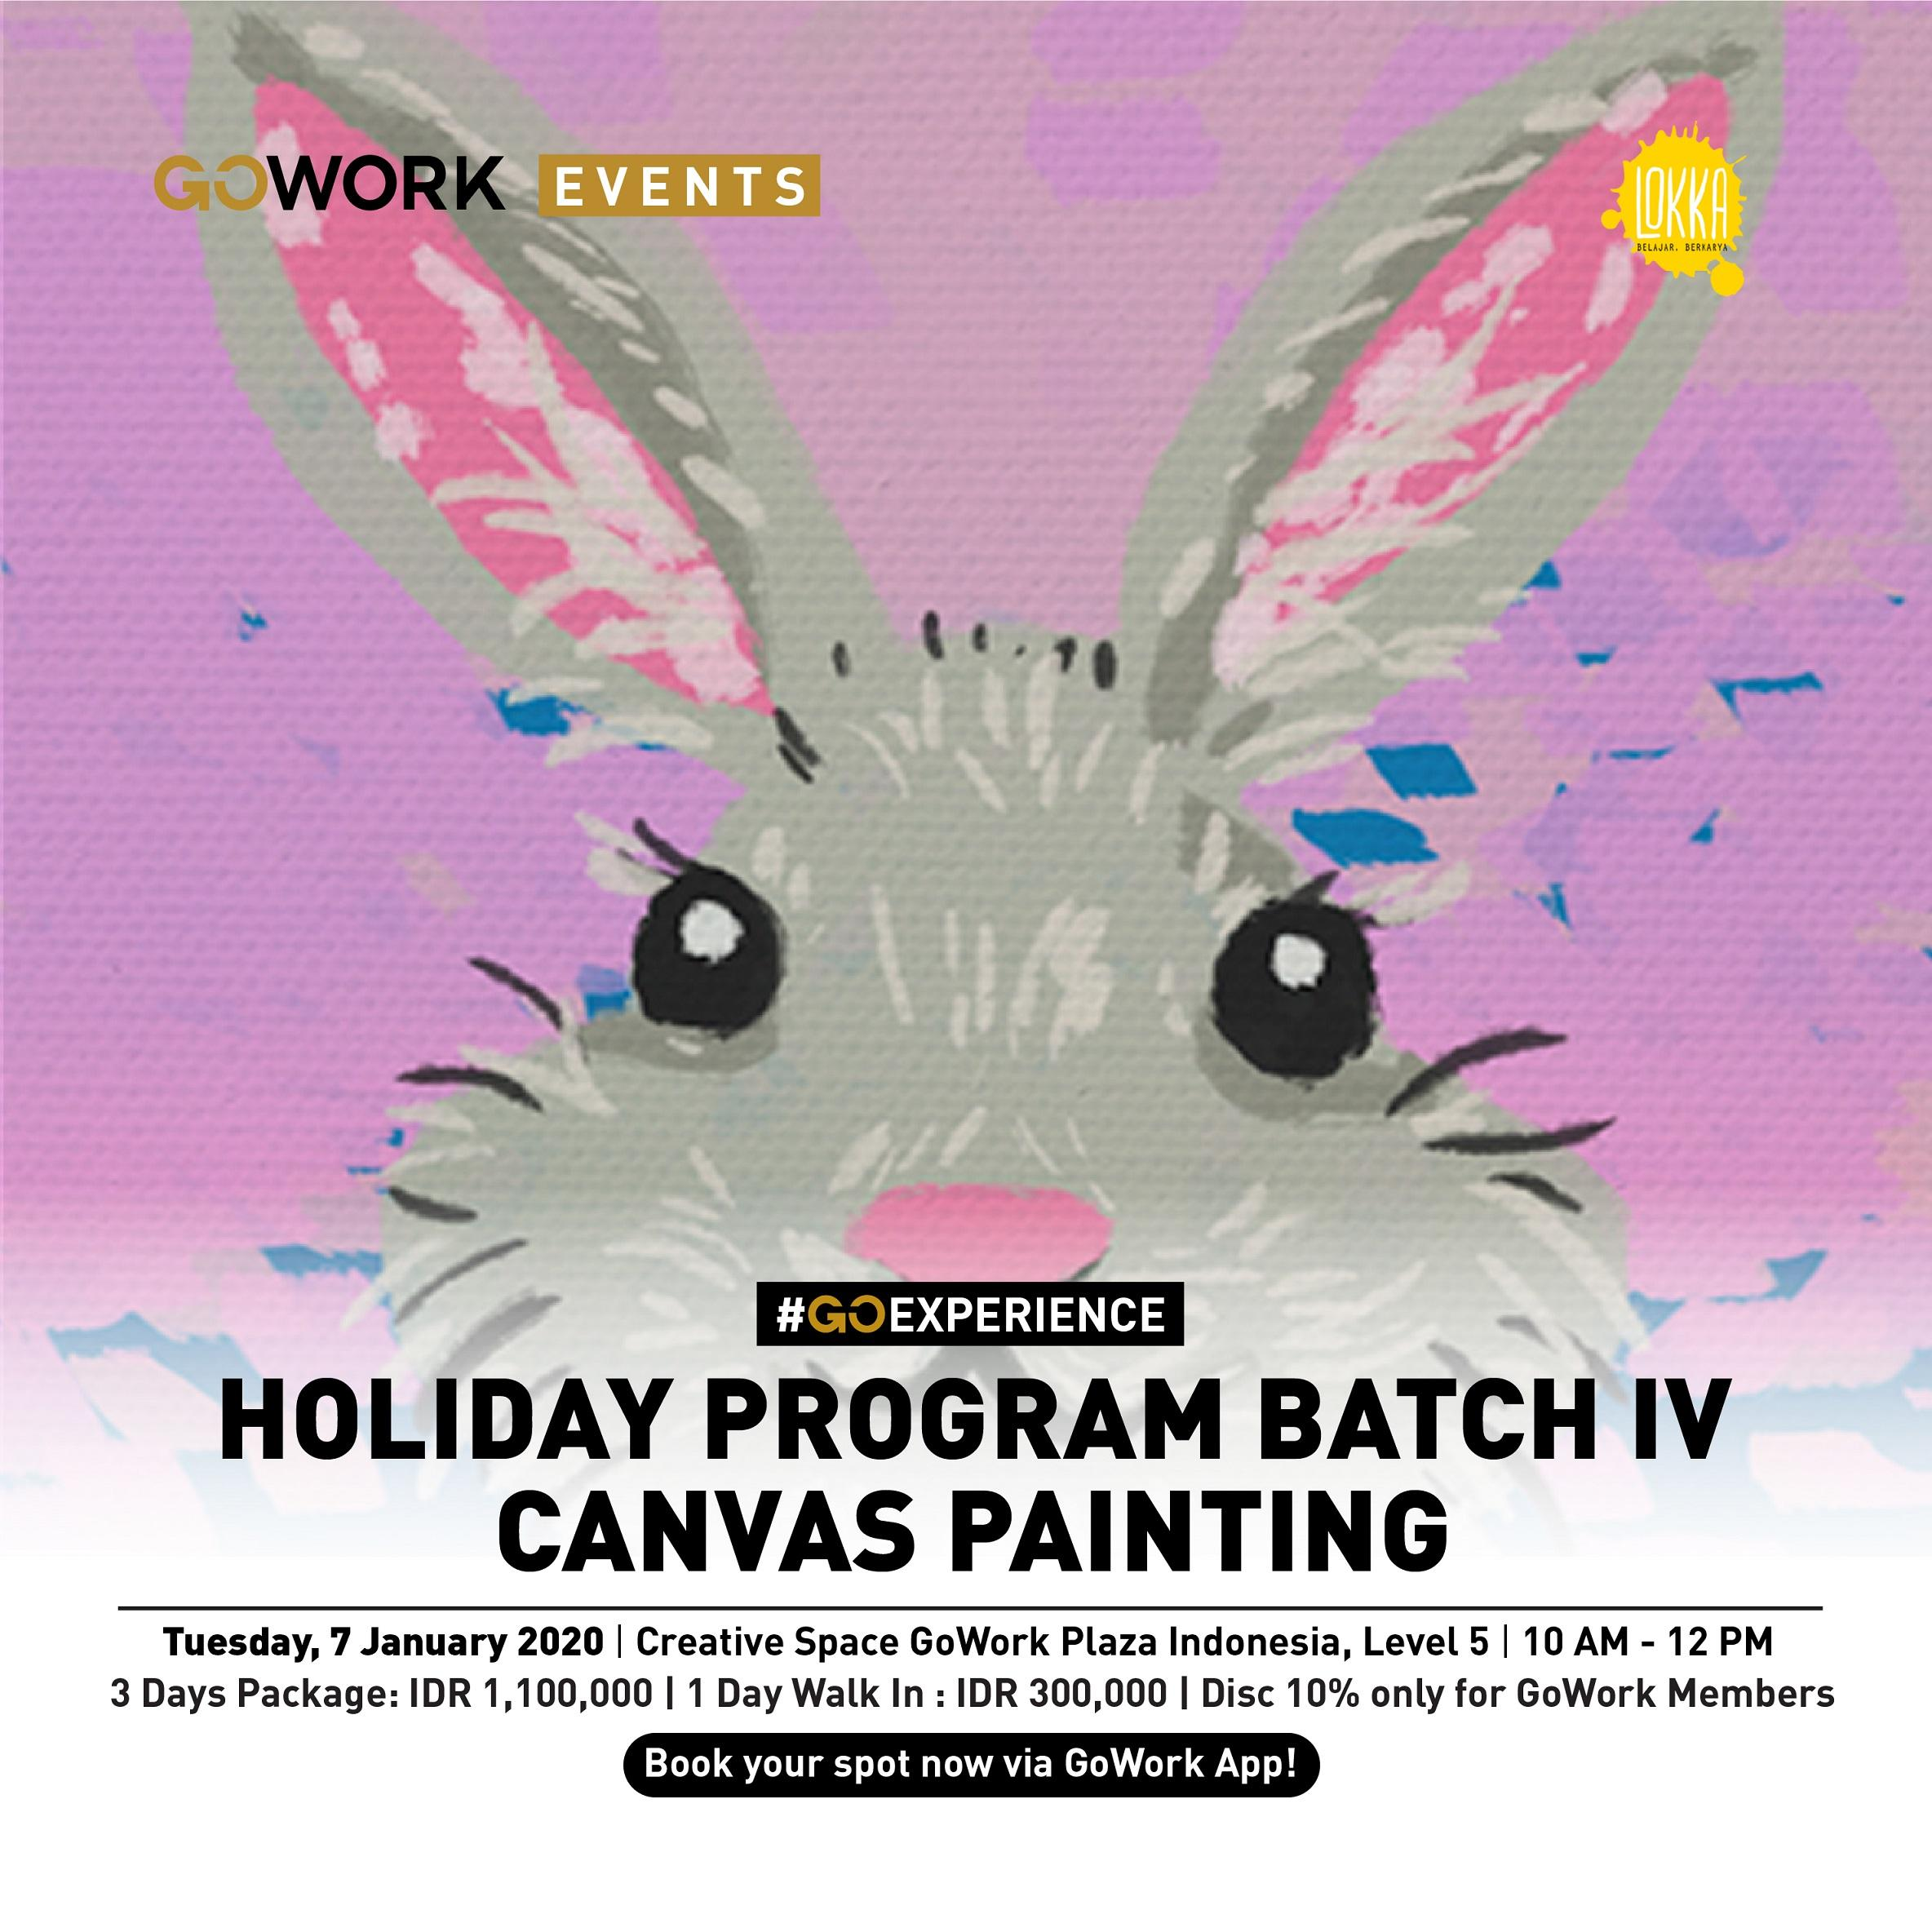 Lokka Holiday Program Batch IV : Canvas Painting